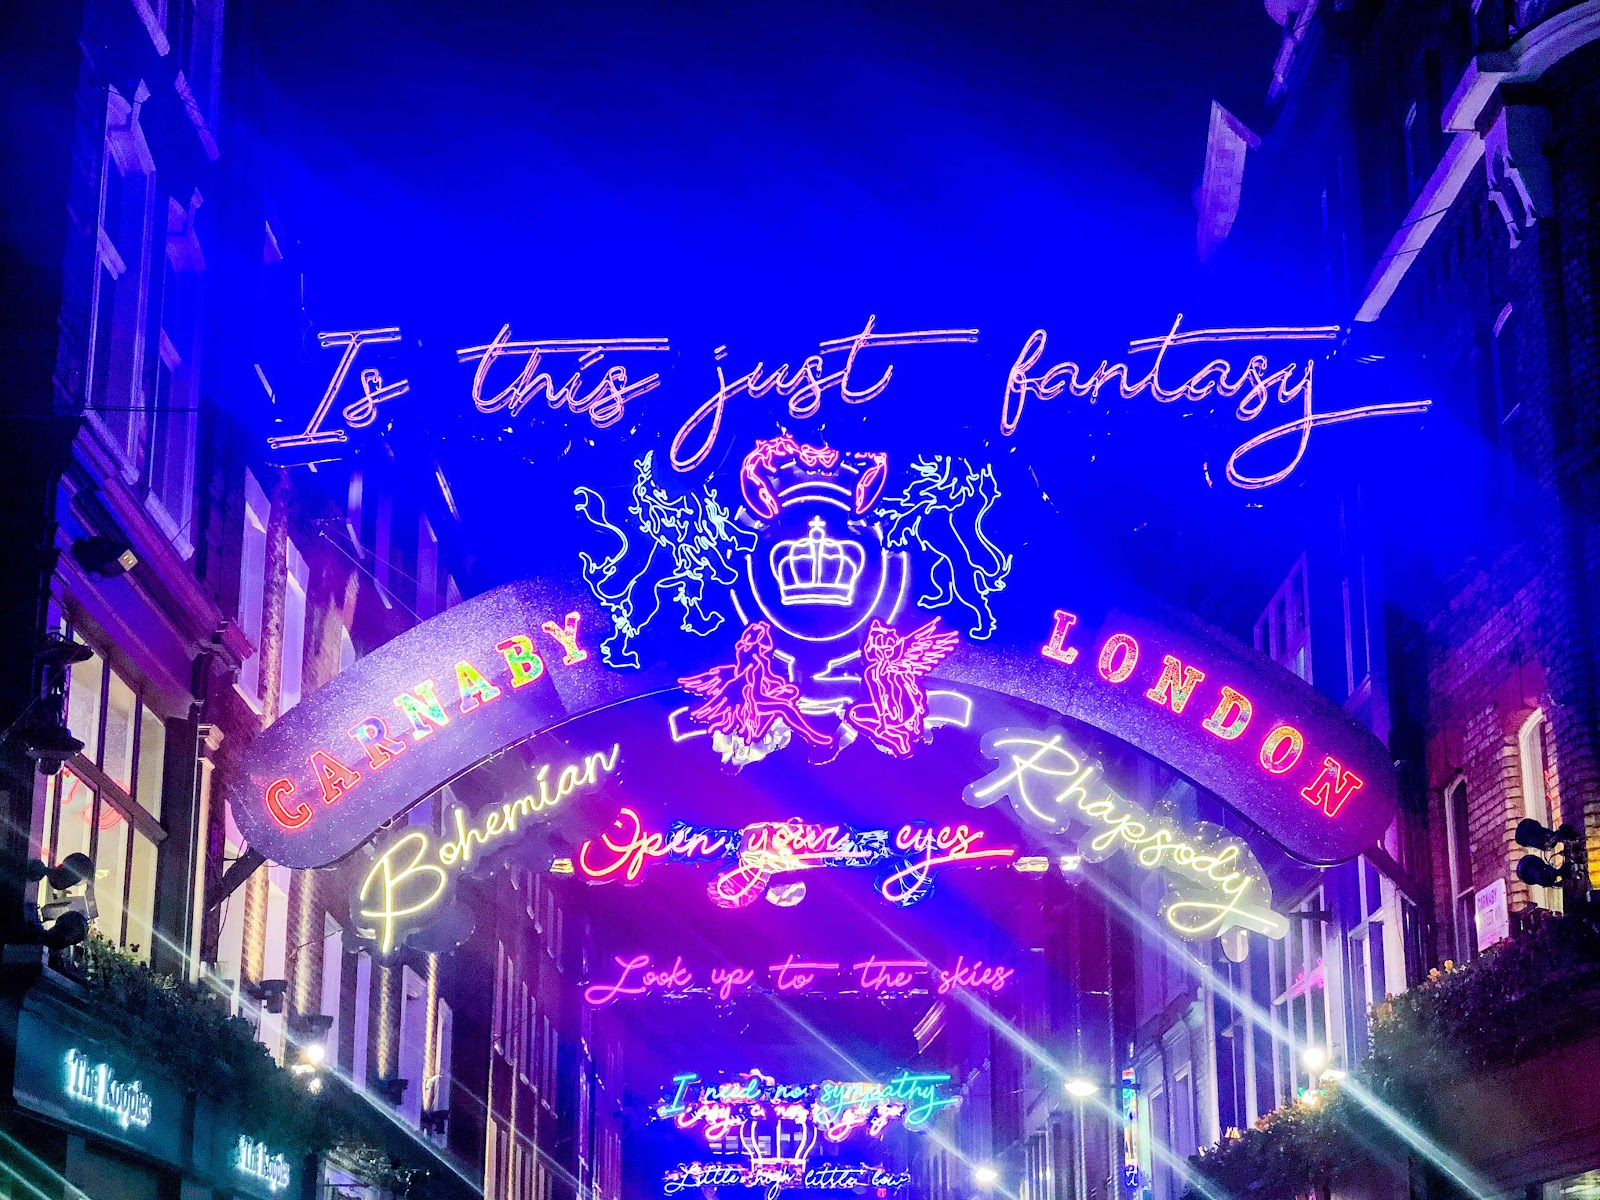 london-lifestyle-blog-top-10-things-to-do-in-soho-london-carnay-street-christmas-lights